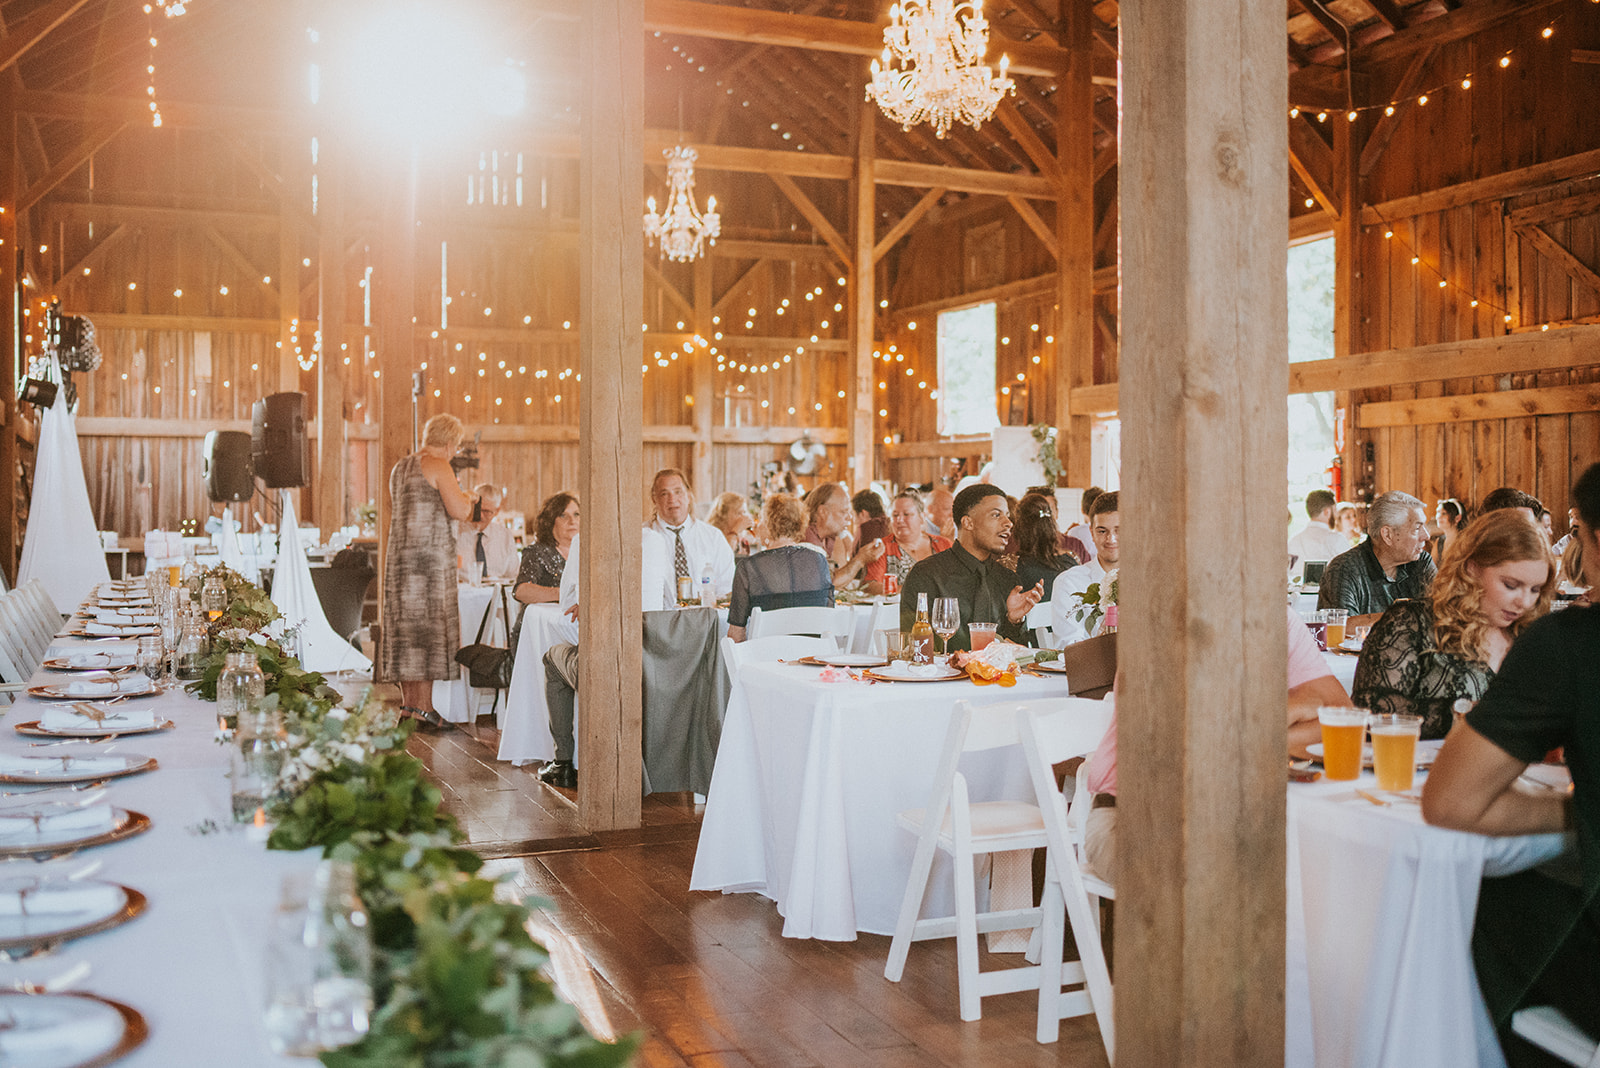 overthevineswisconsinwedding_1122.jpg